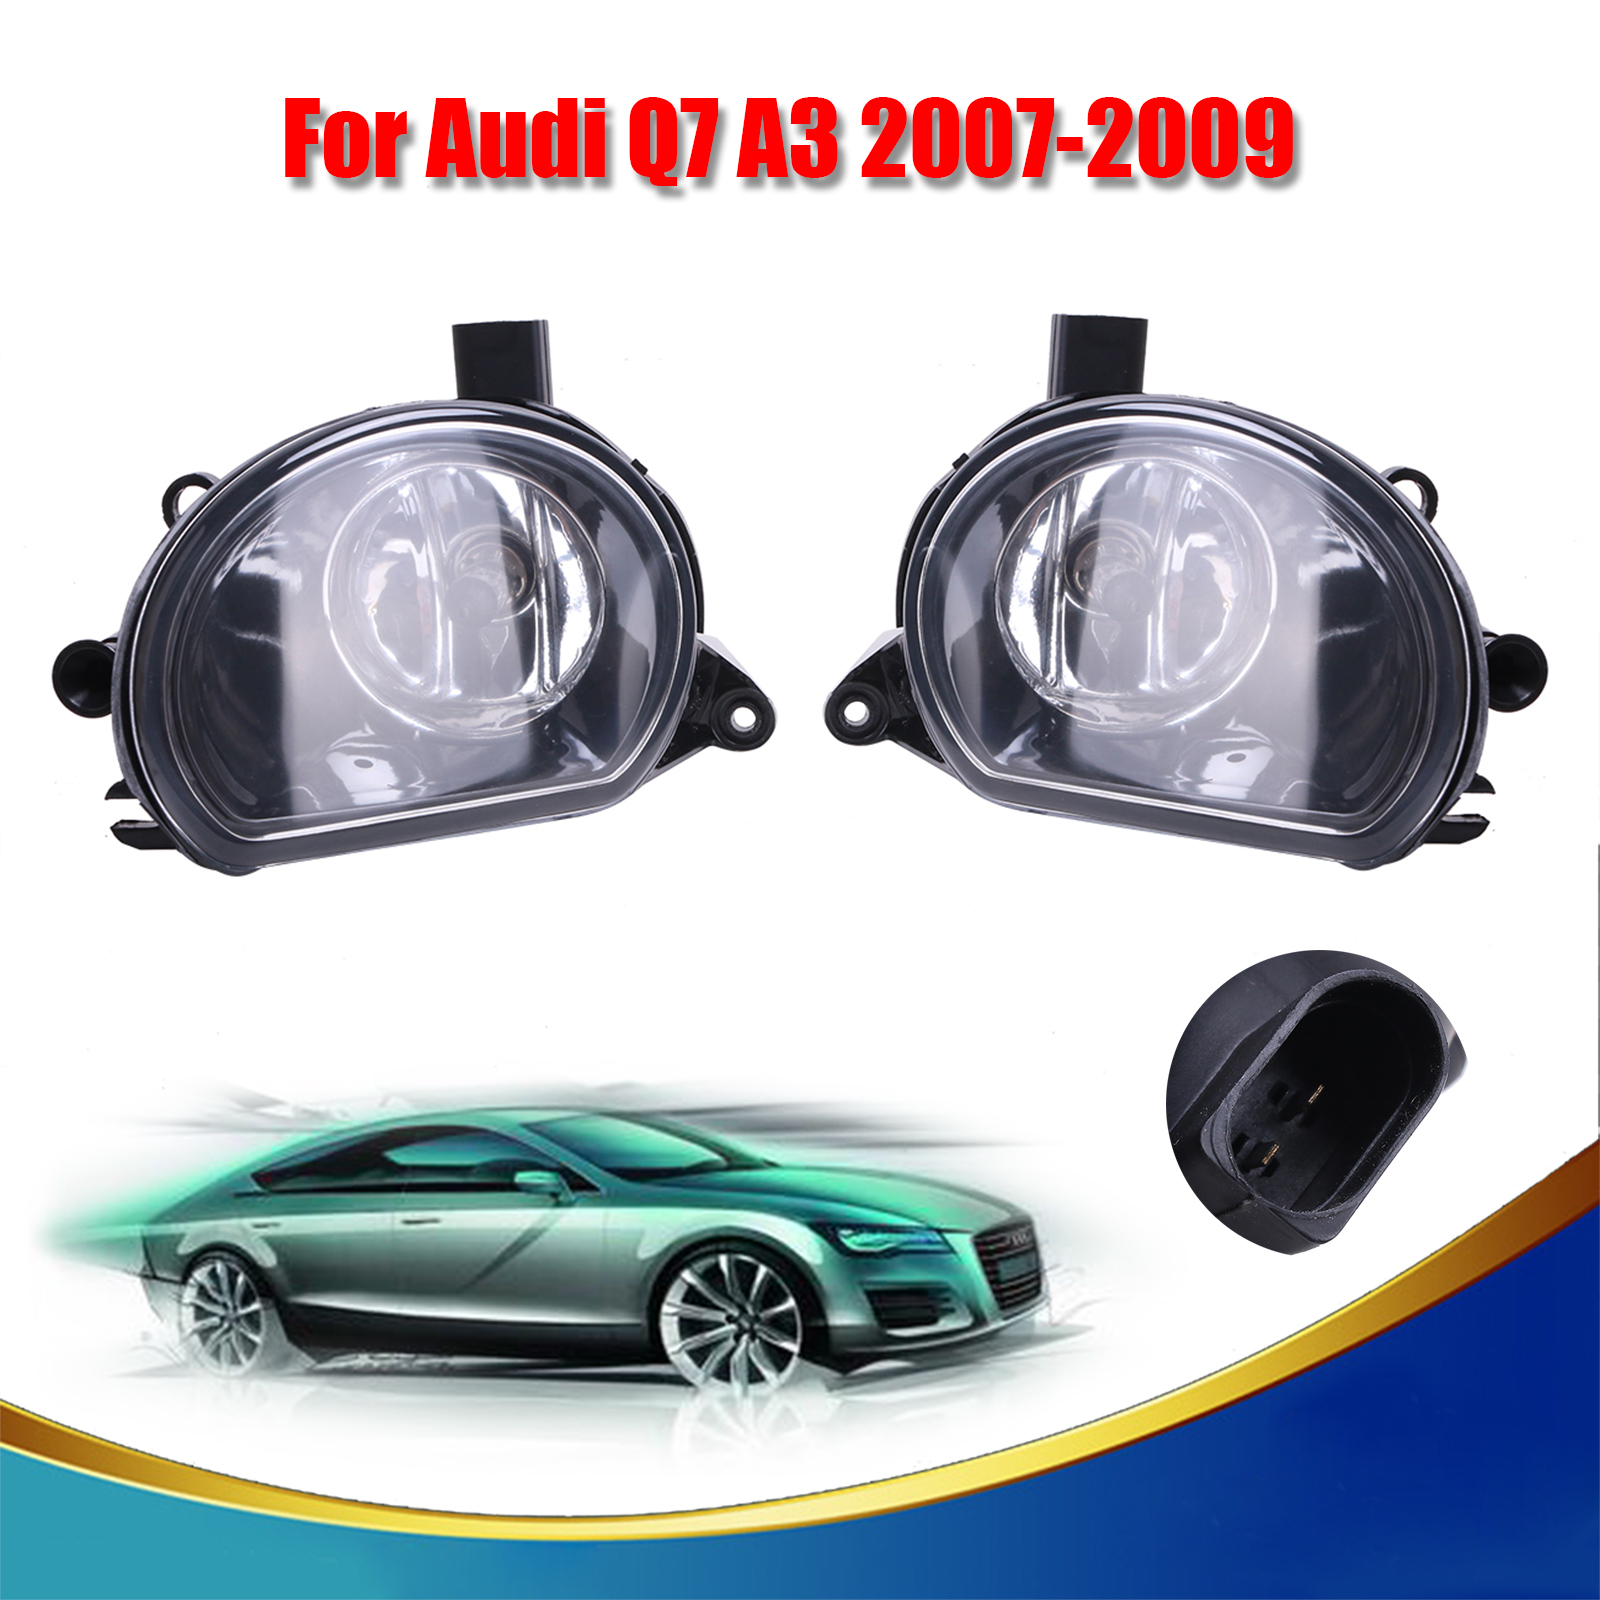 1 Pair Car Accessory Front  Fog Lights Lamp  With H7 Bulbs For AUDI Q7 A3 2007 2008 2009 OEM 8P0941699 + 8P0941700 // apps2car car usb sd aux adapter audio interface mp3 converter for audi s4 2007 2009 fits select oem radios